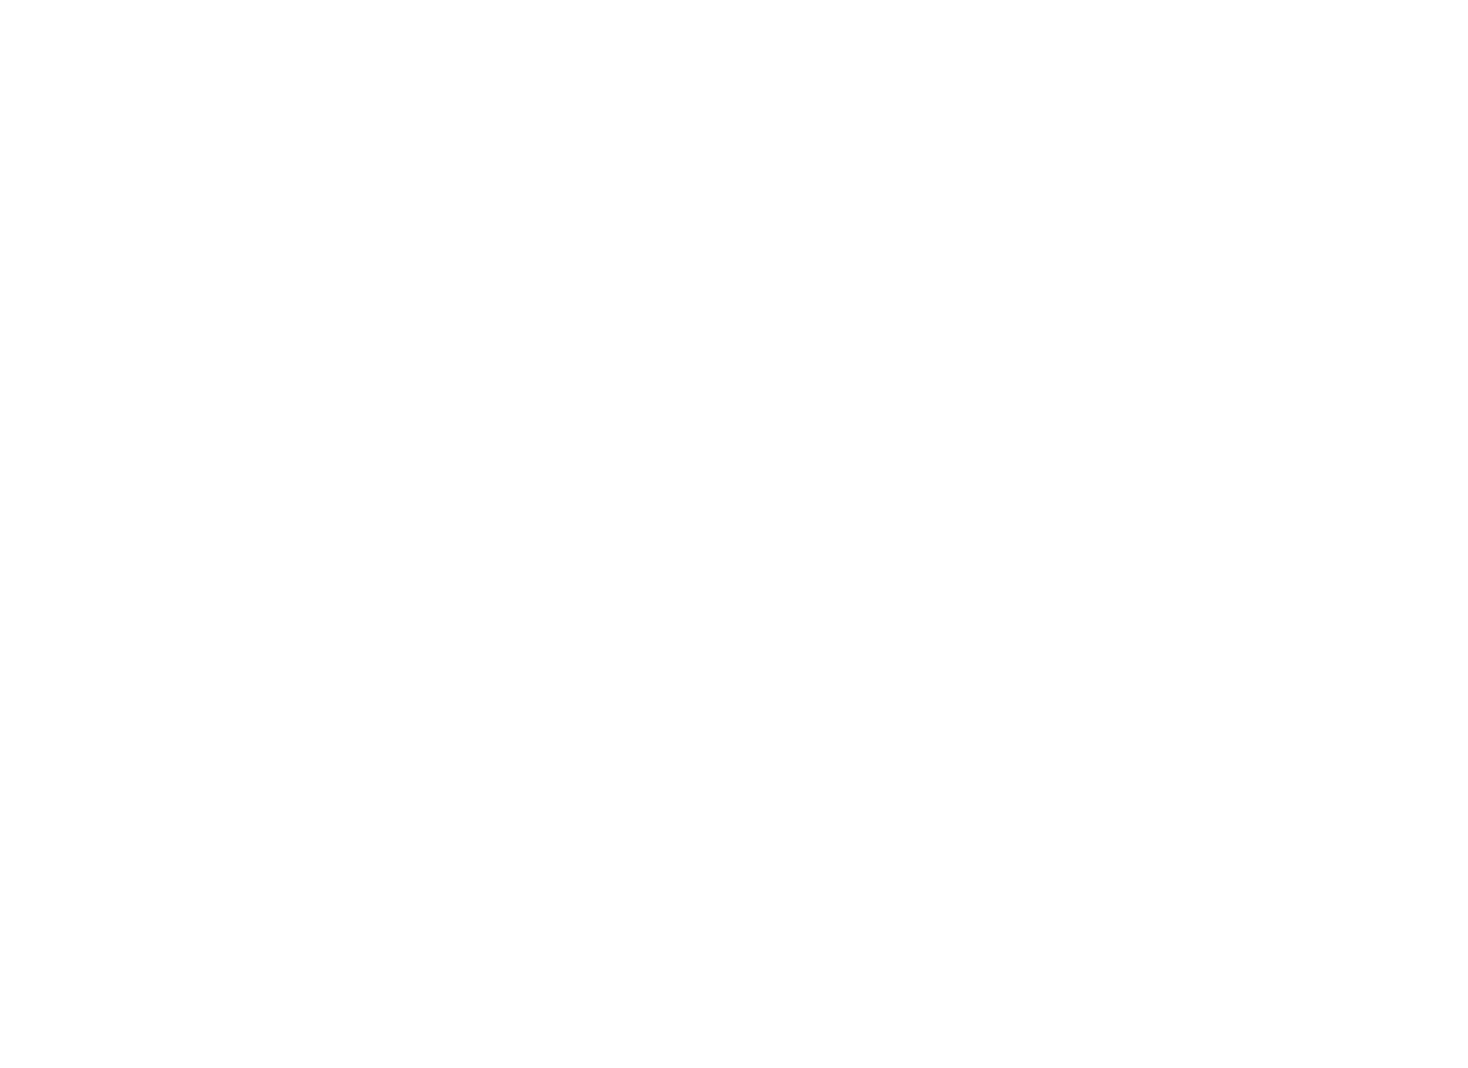 New upcoming feature ability. Dust clipart nose